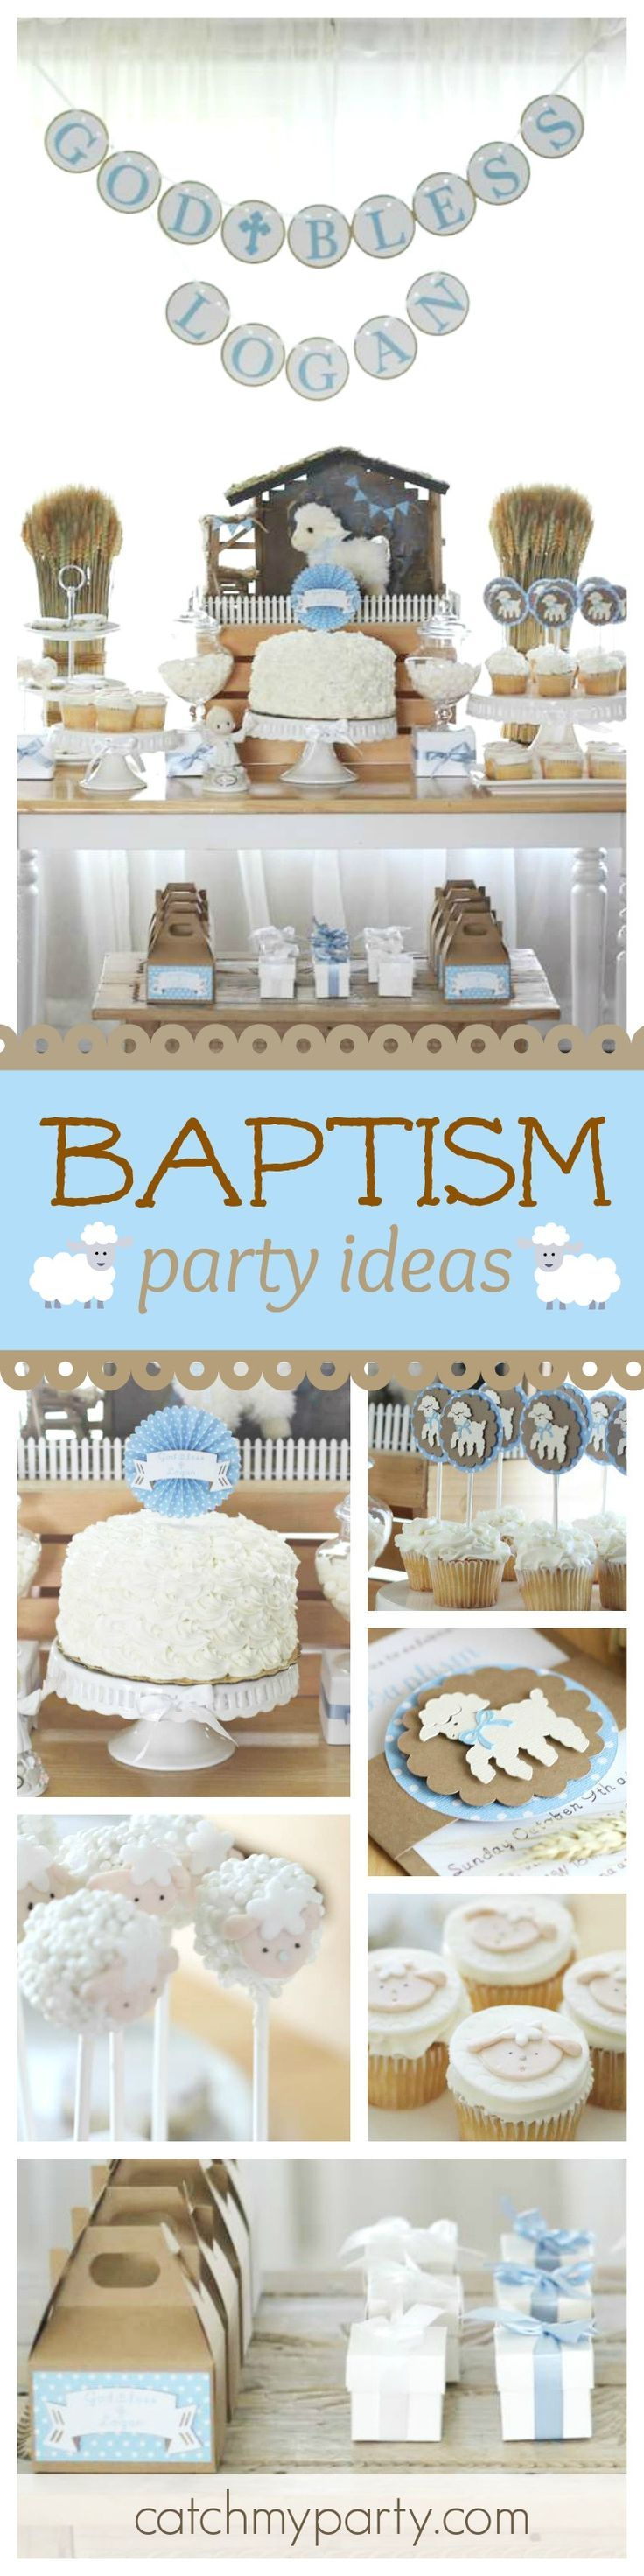 You don't want to miss this gorgeous little lamb baptism party! The lamb cupcakes and cake pops are adorable!! See more party ideas and share yours at http://CatchMyParty.com